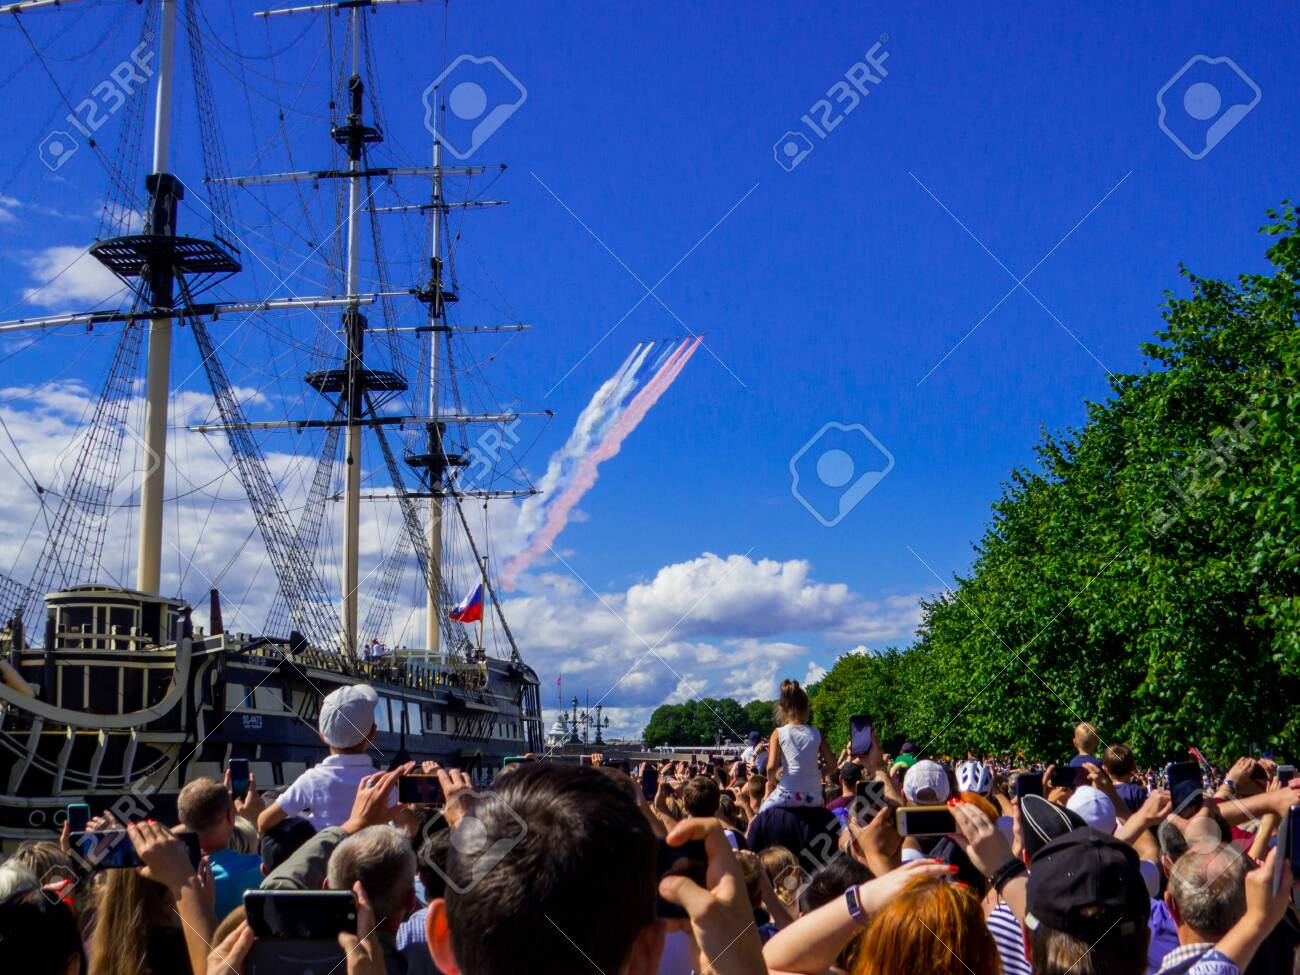 St. Petersburg, Russia - July 26, 2020: People watching the annual celebrations for the Navy Day on the embankment of the Neva River. - 152365072